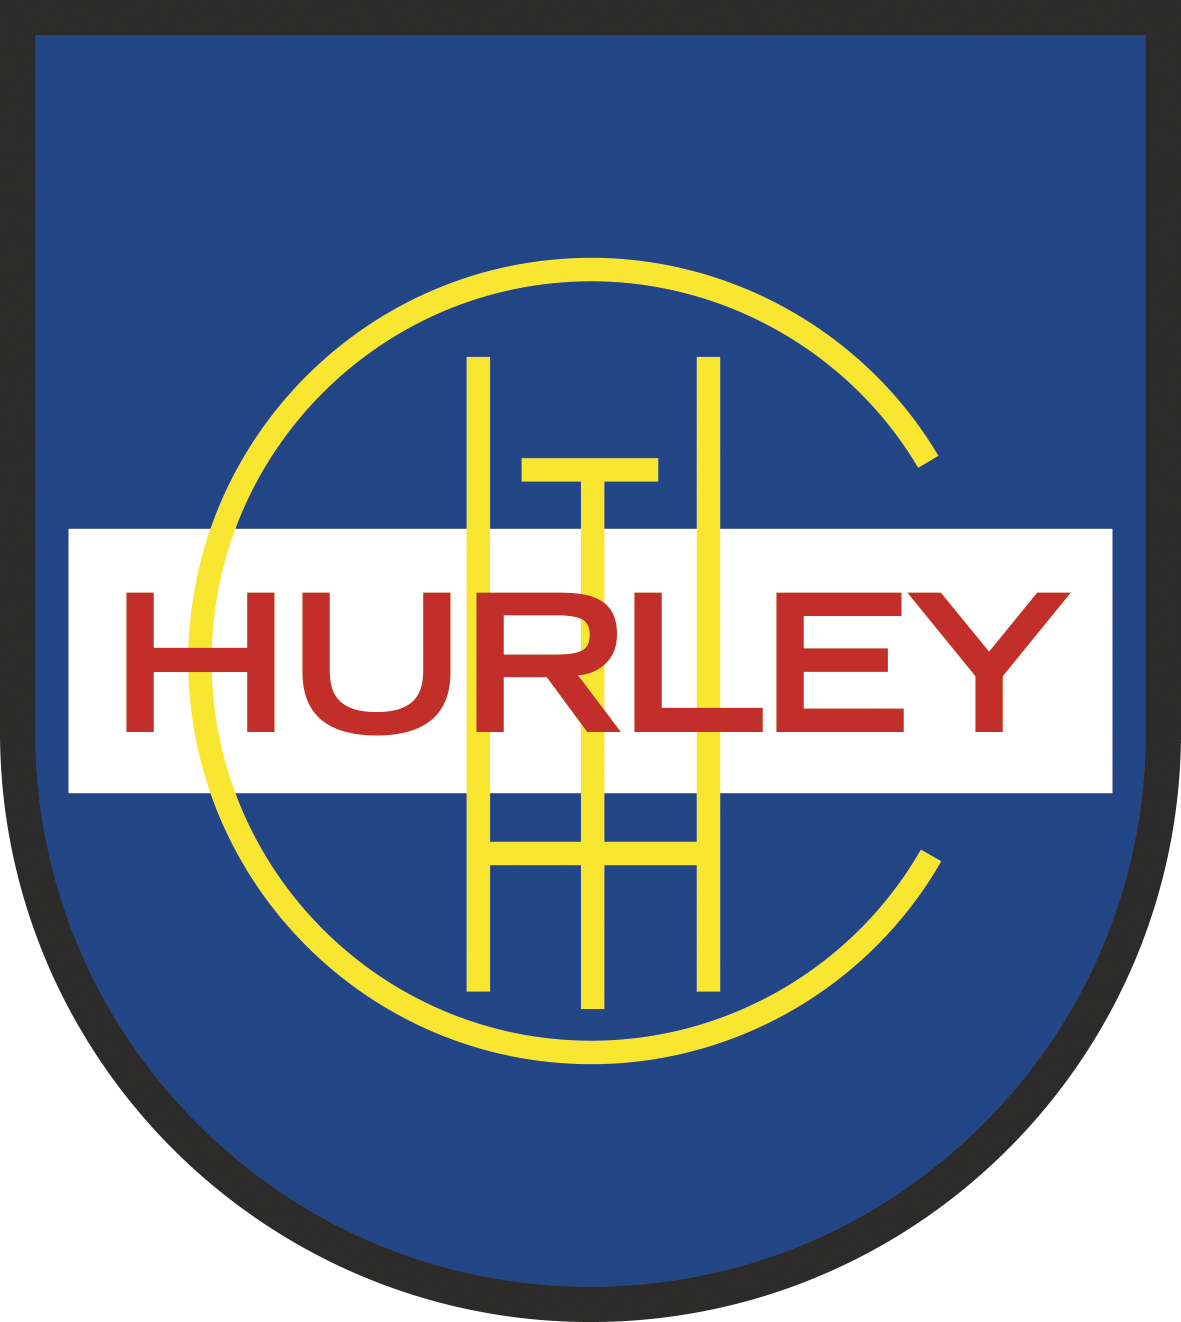 west hurley dating site We have reviews of the best places to see in west hurley visit top-rated   senate house state historic site kingston 61 mi away 53 reviews #6 of 28  things to.